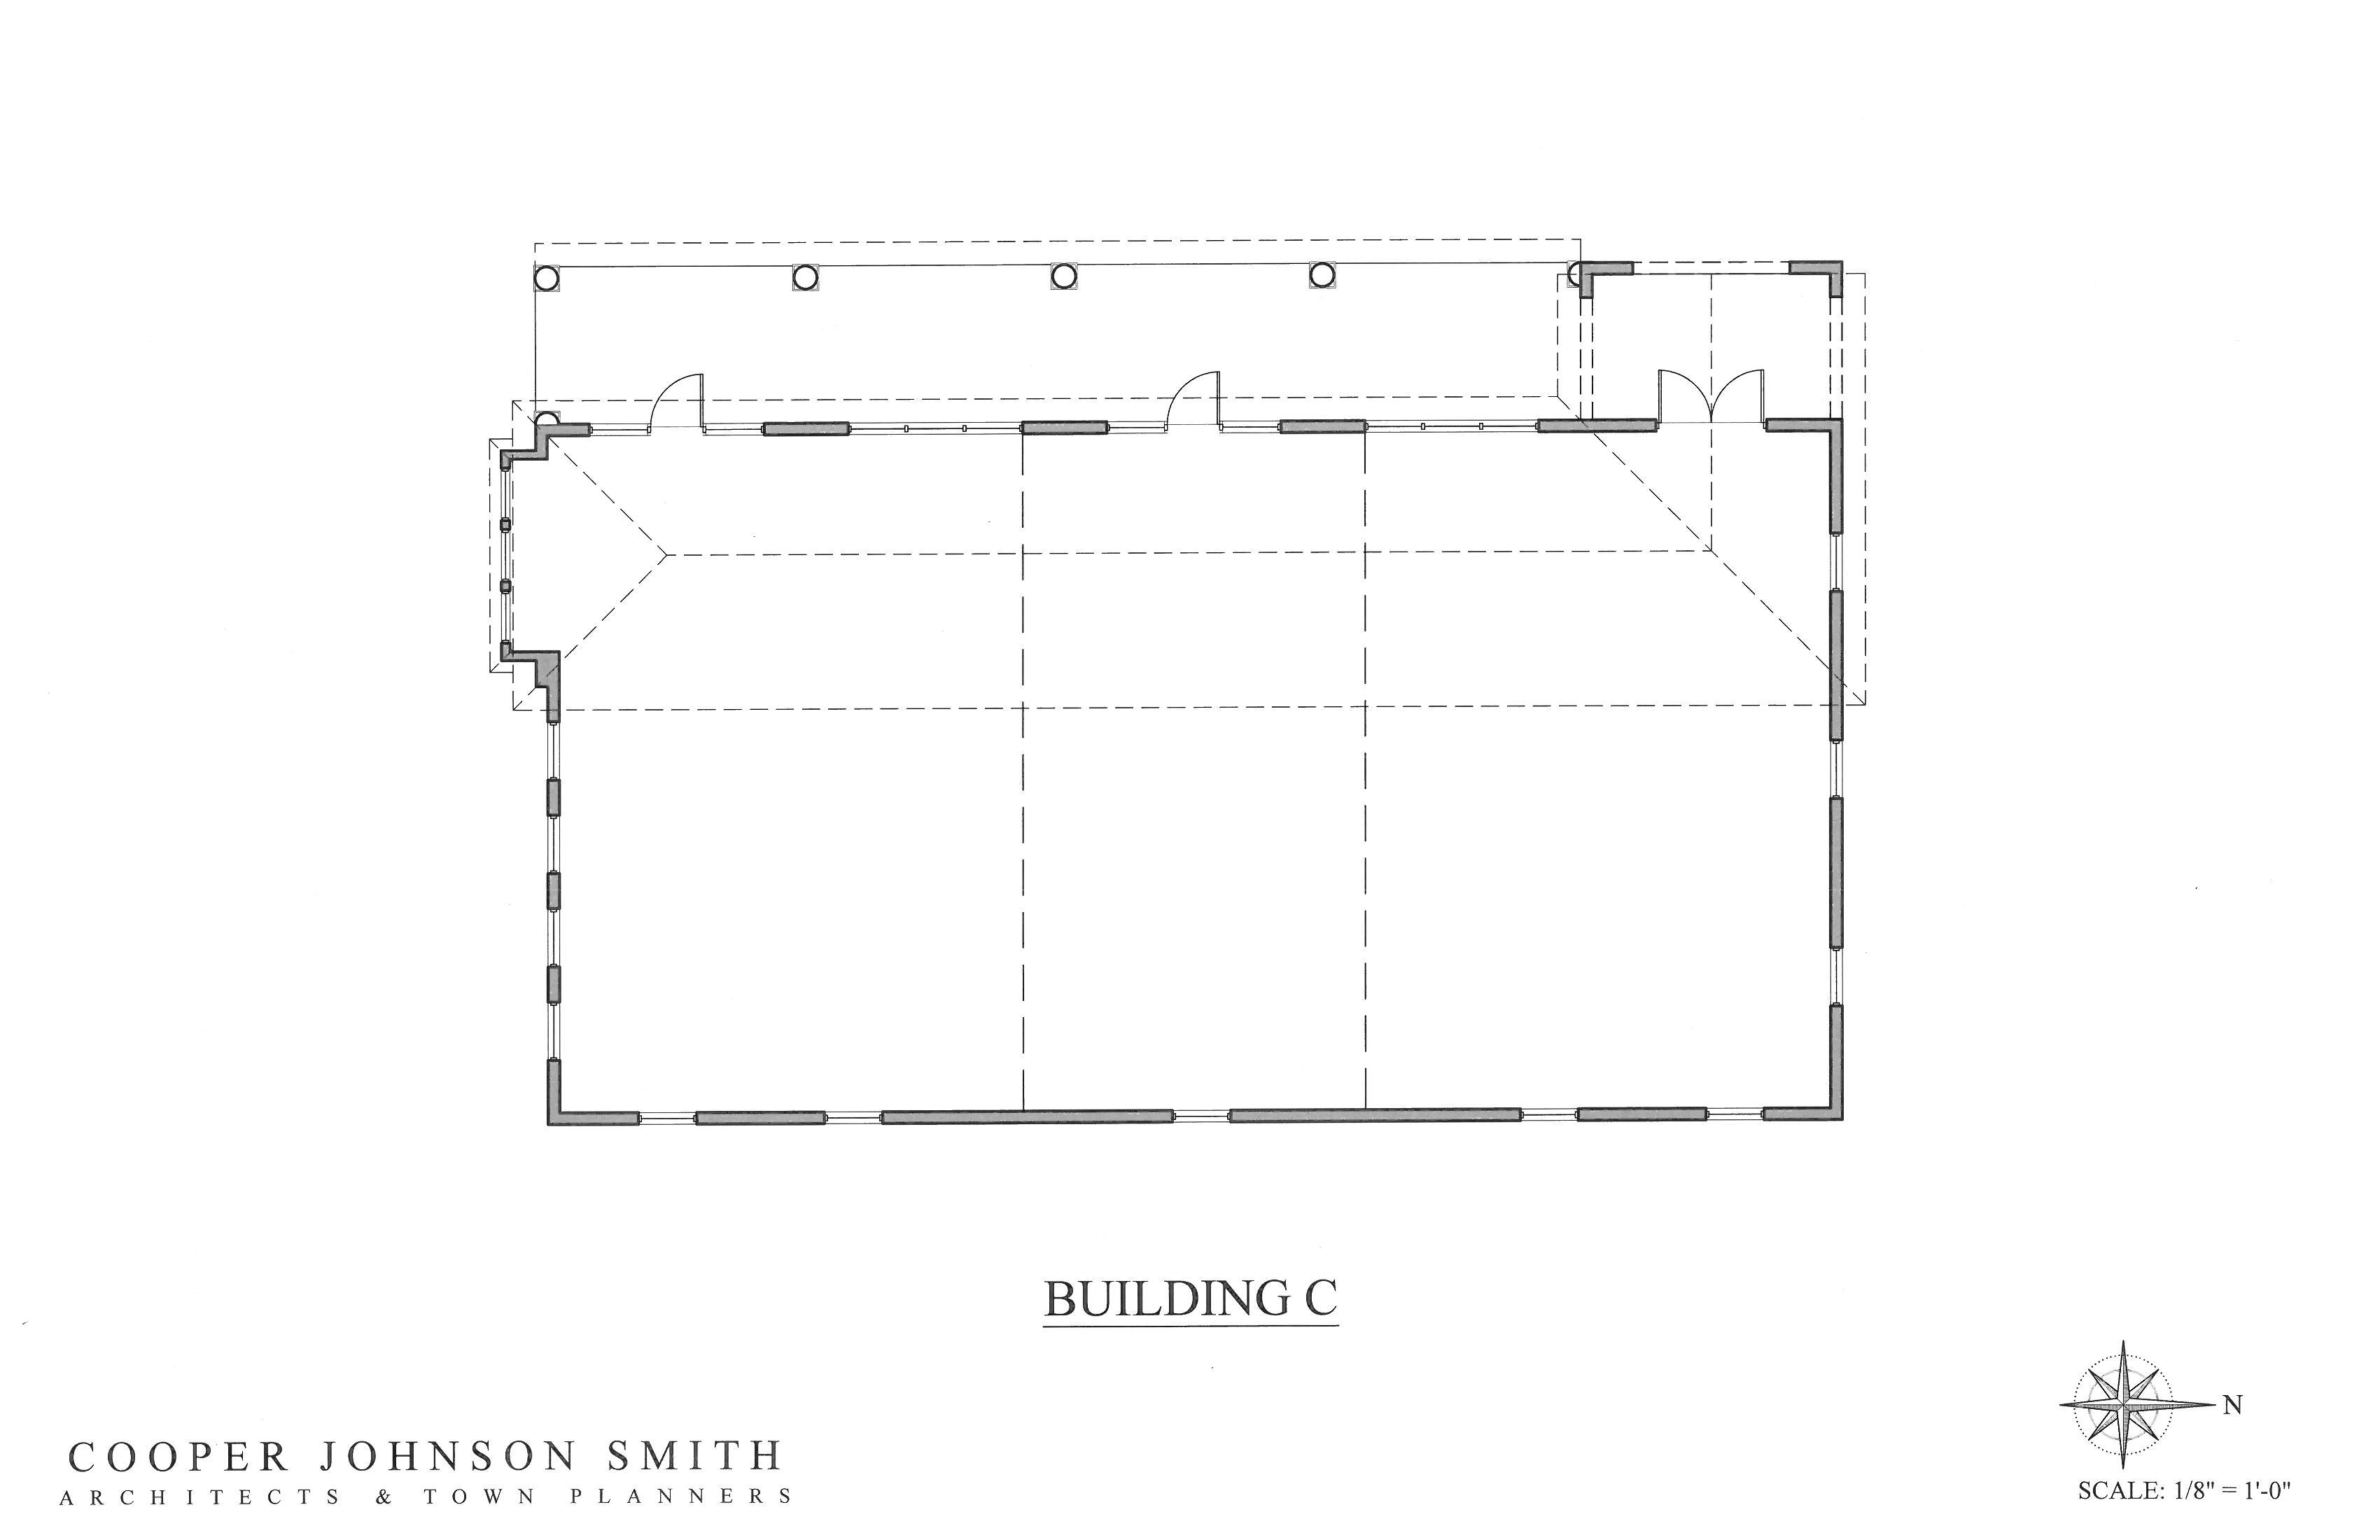 Restaurant retail tampa palms professional center for Building site plan